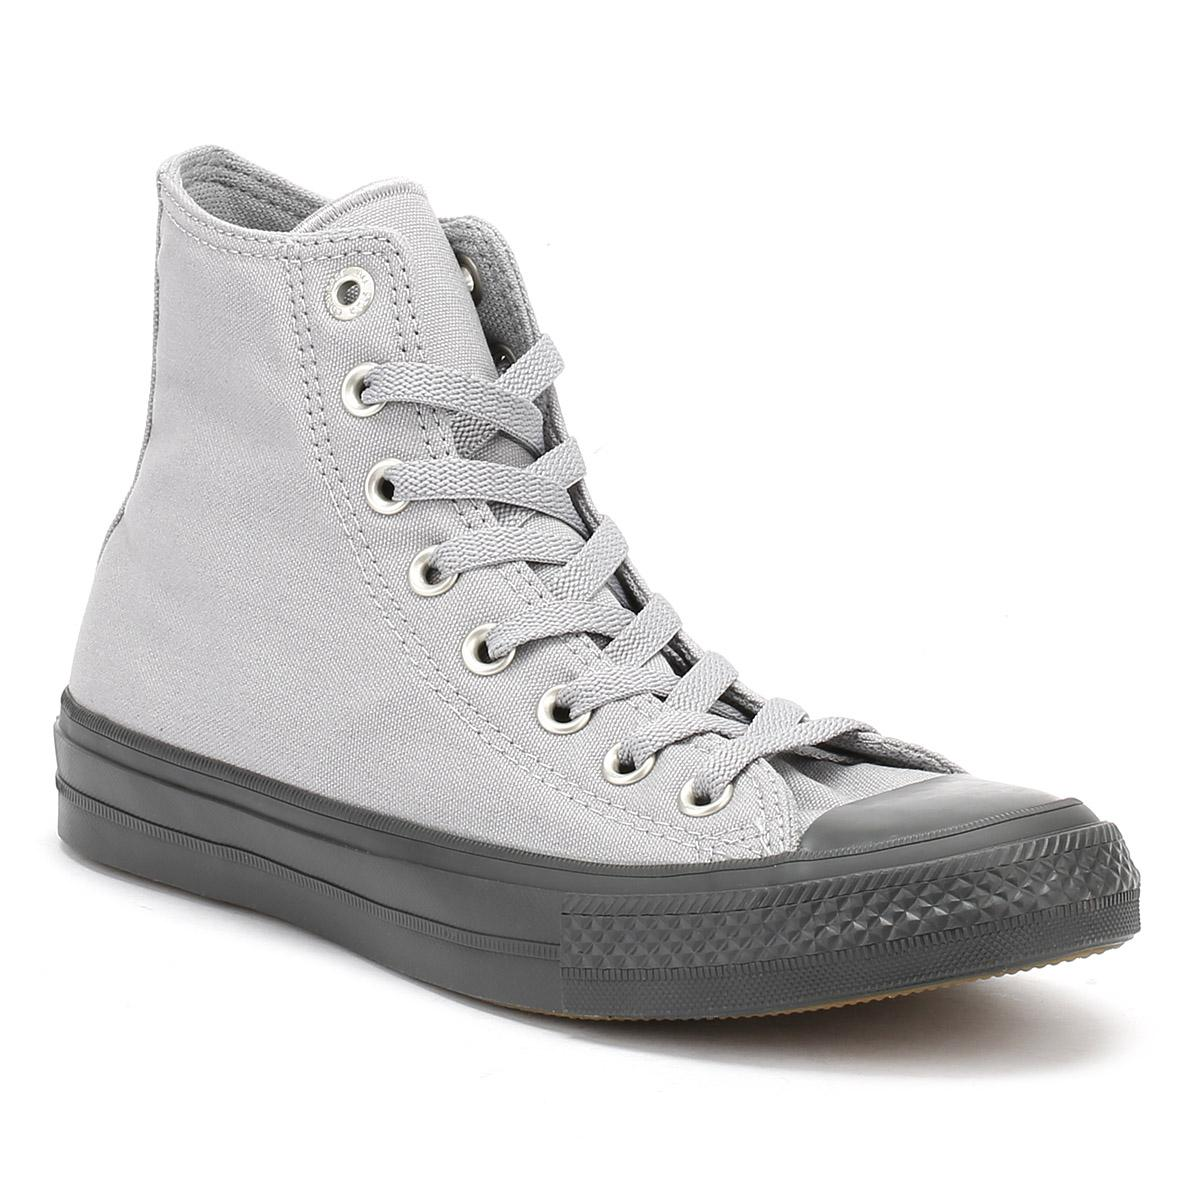 157631b4a87 Converse All Star Chuck Taylor Ii Mens Dolphin storm Wind gum Hi Top ...